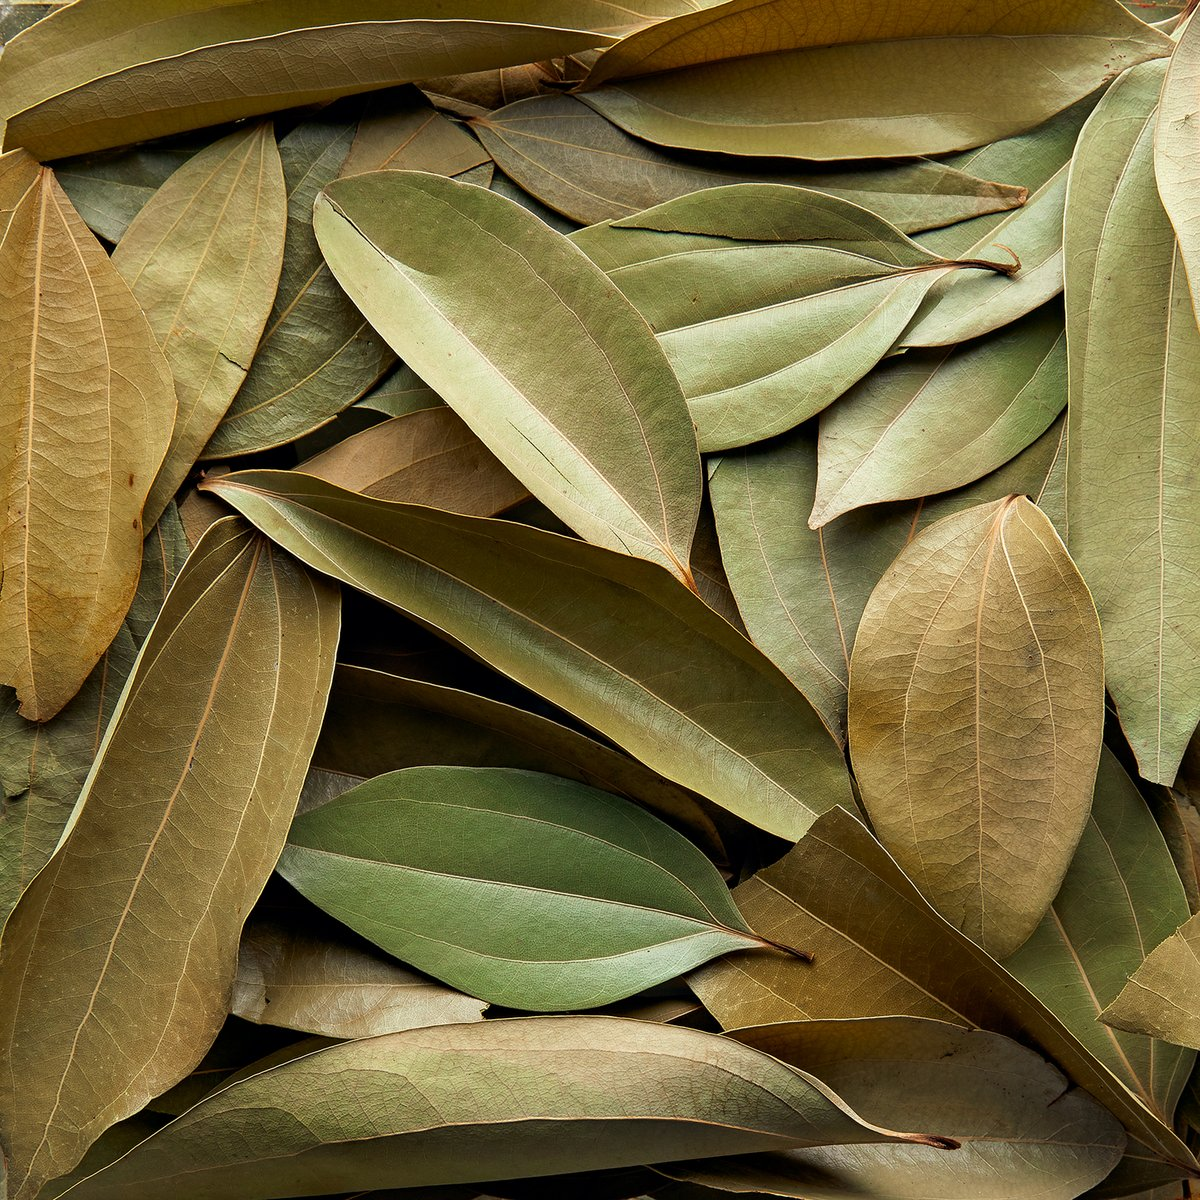 CINNAMON_TREE_LEAVES_-_12_LEAVES_1200x12